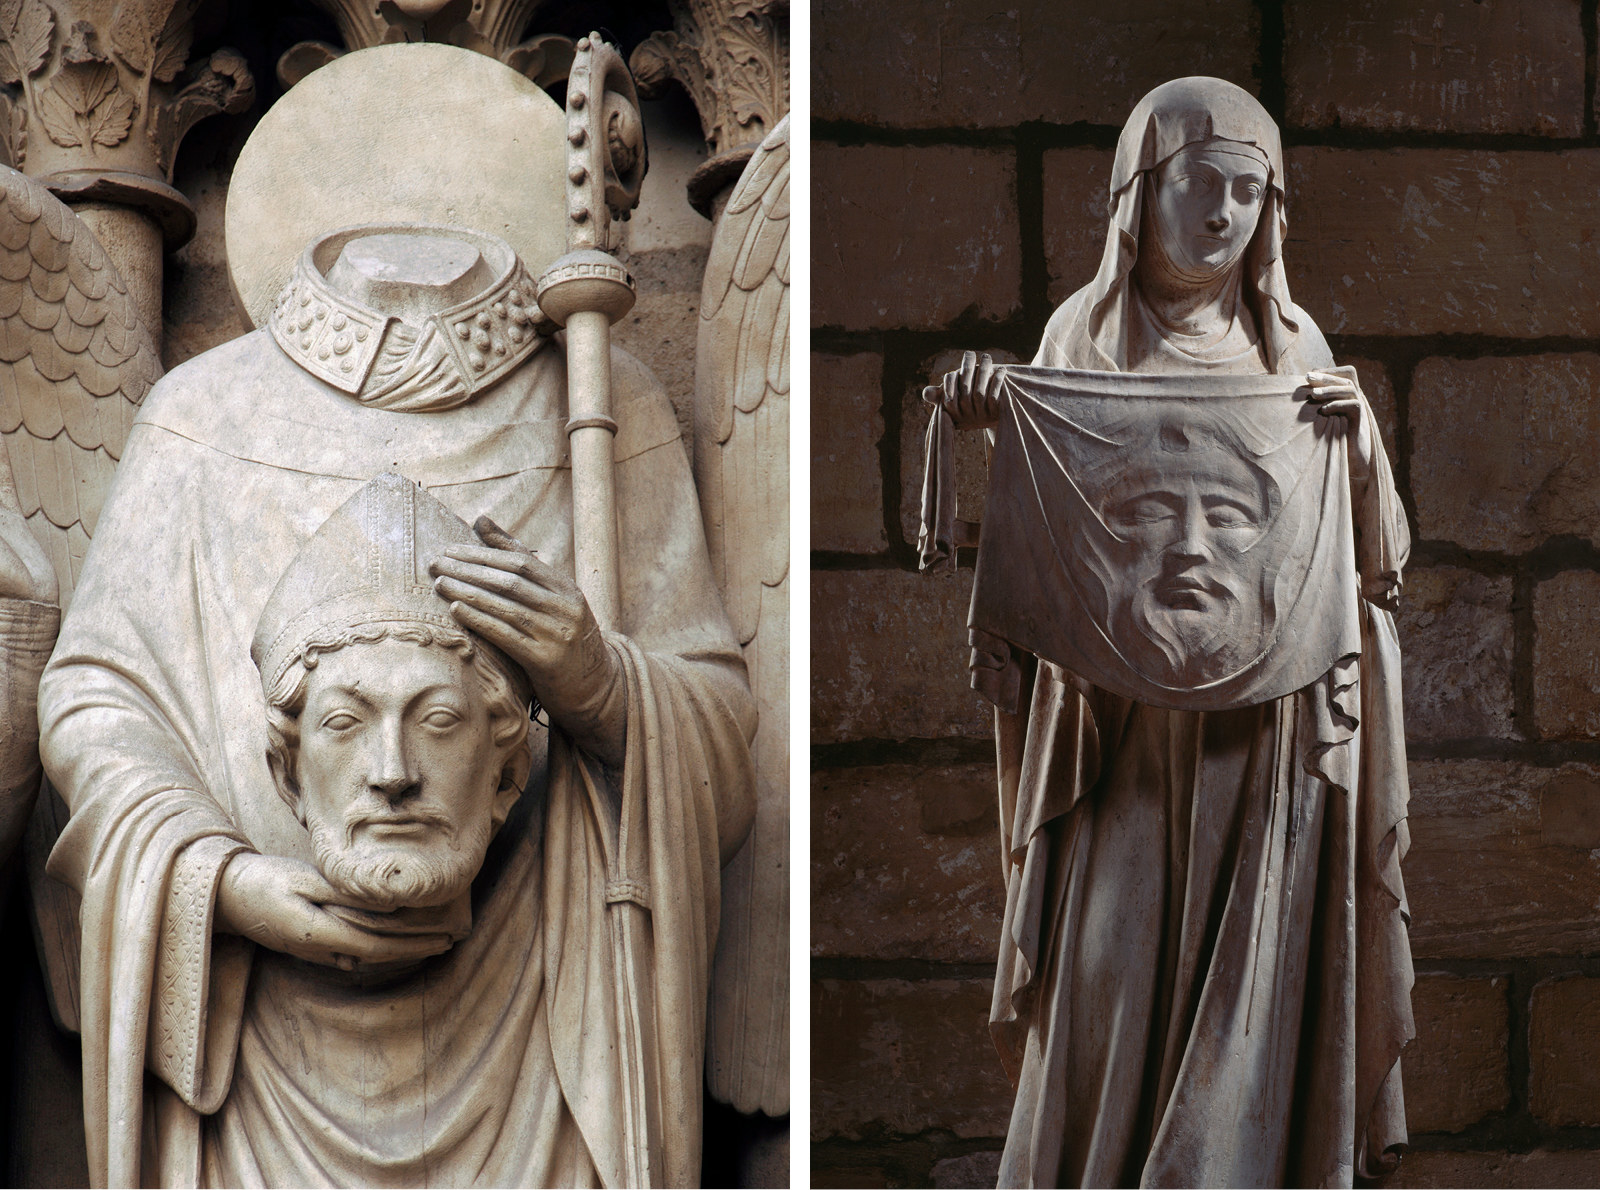 """The cathedral's exterior is adorned with sculptures illustrating biblical stories, known as the """"poor people's book,"""" as, historically, the majority of parishioners could not read. Left: Christian martyr Saint Denis holding his head. Right: Saint Veronique holding the shroud of Christ."""